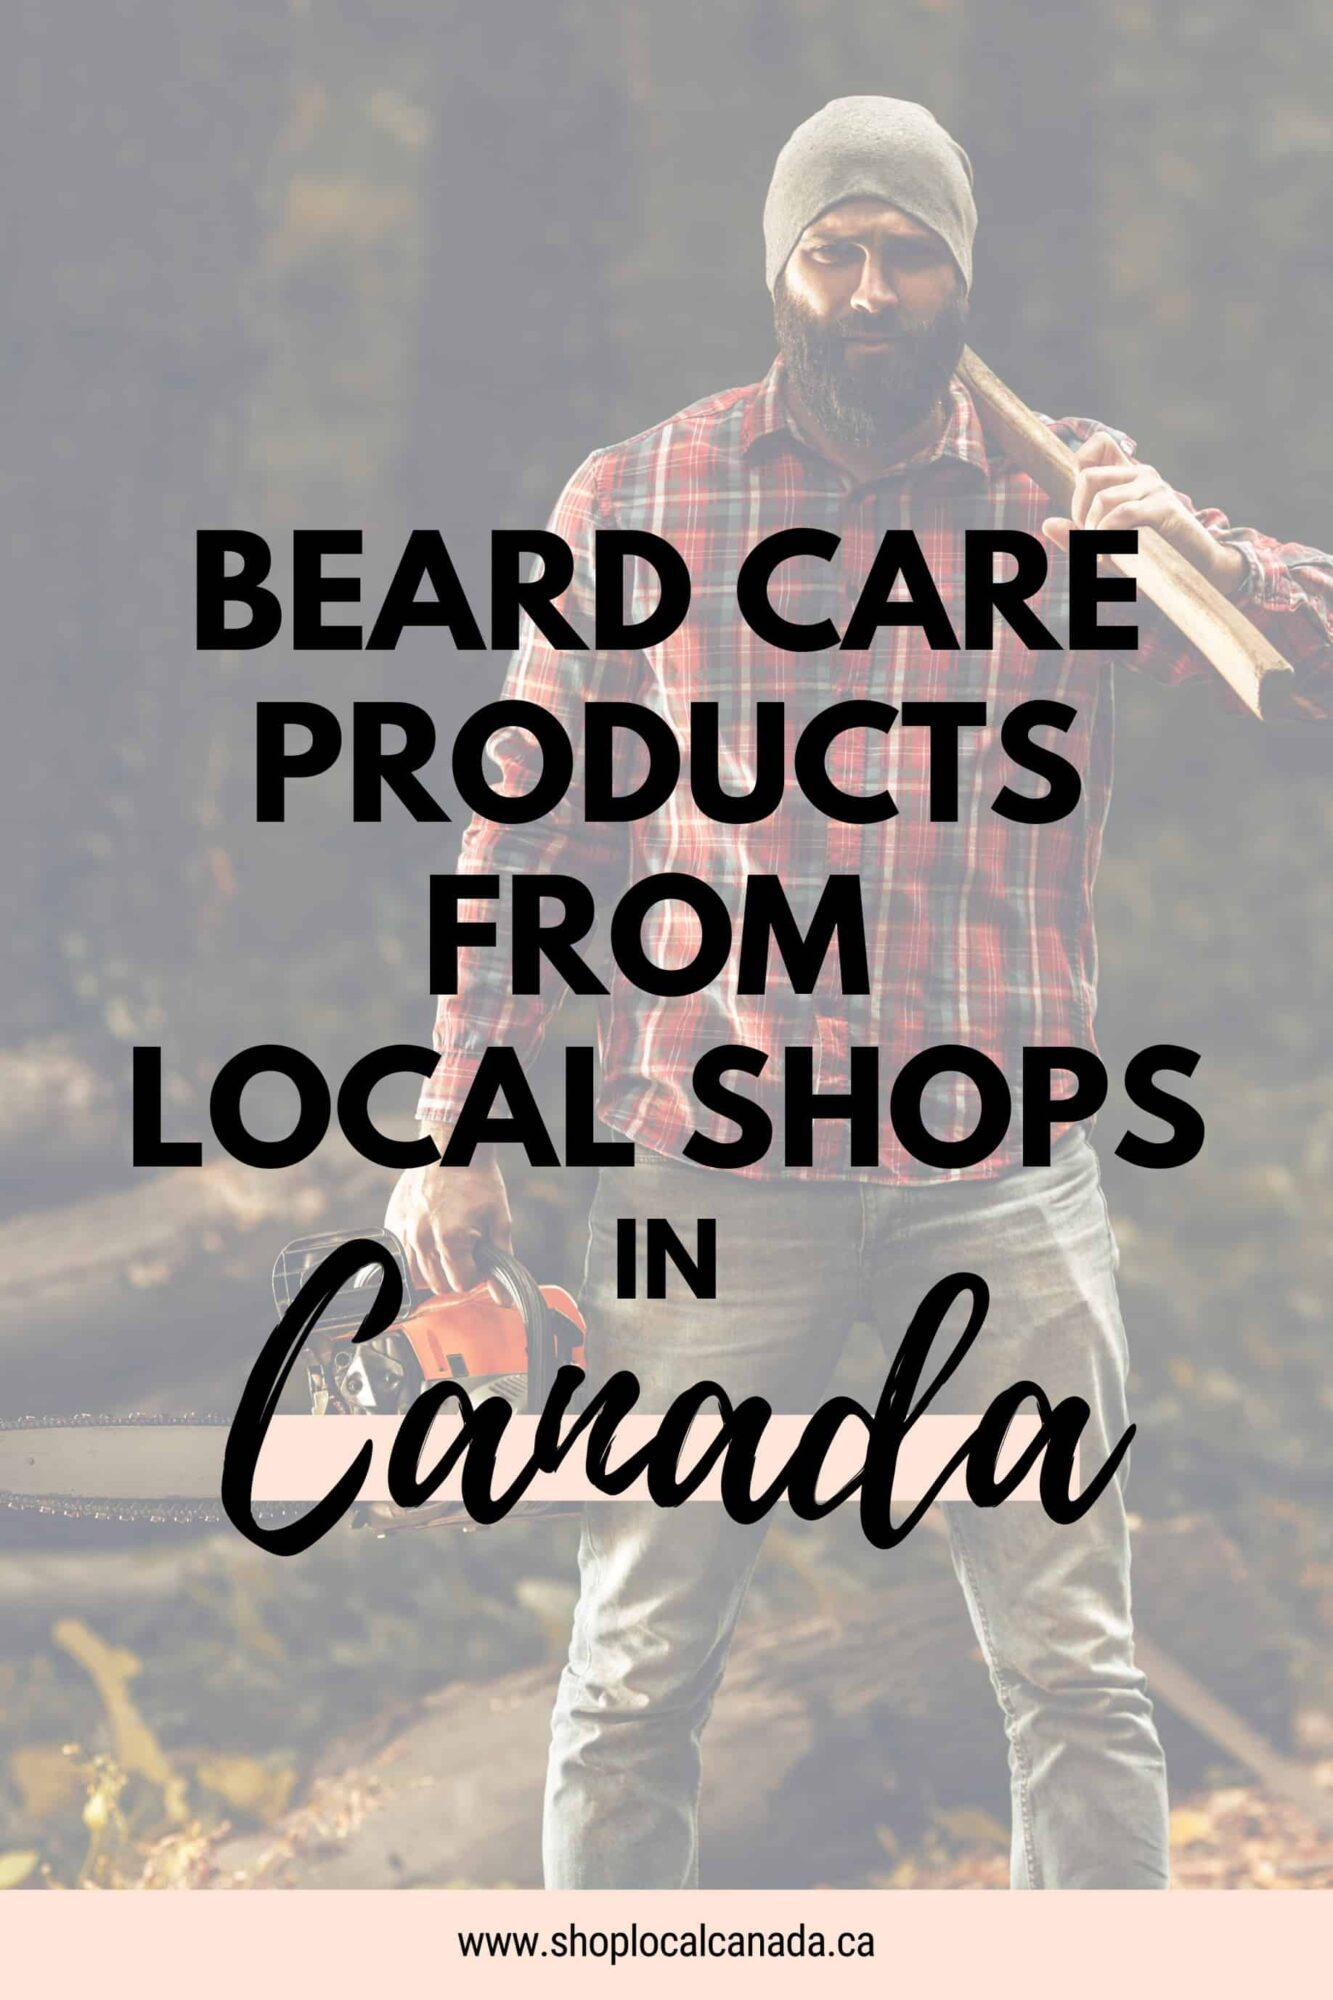 beard-care-products-local-shops-canada